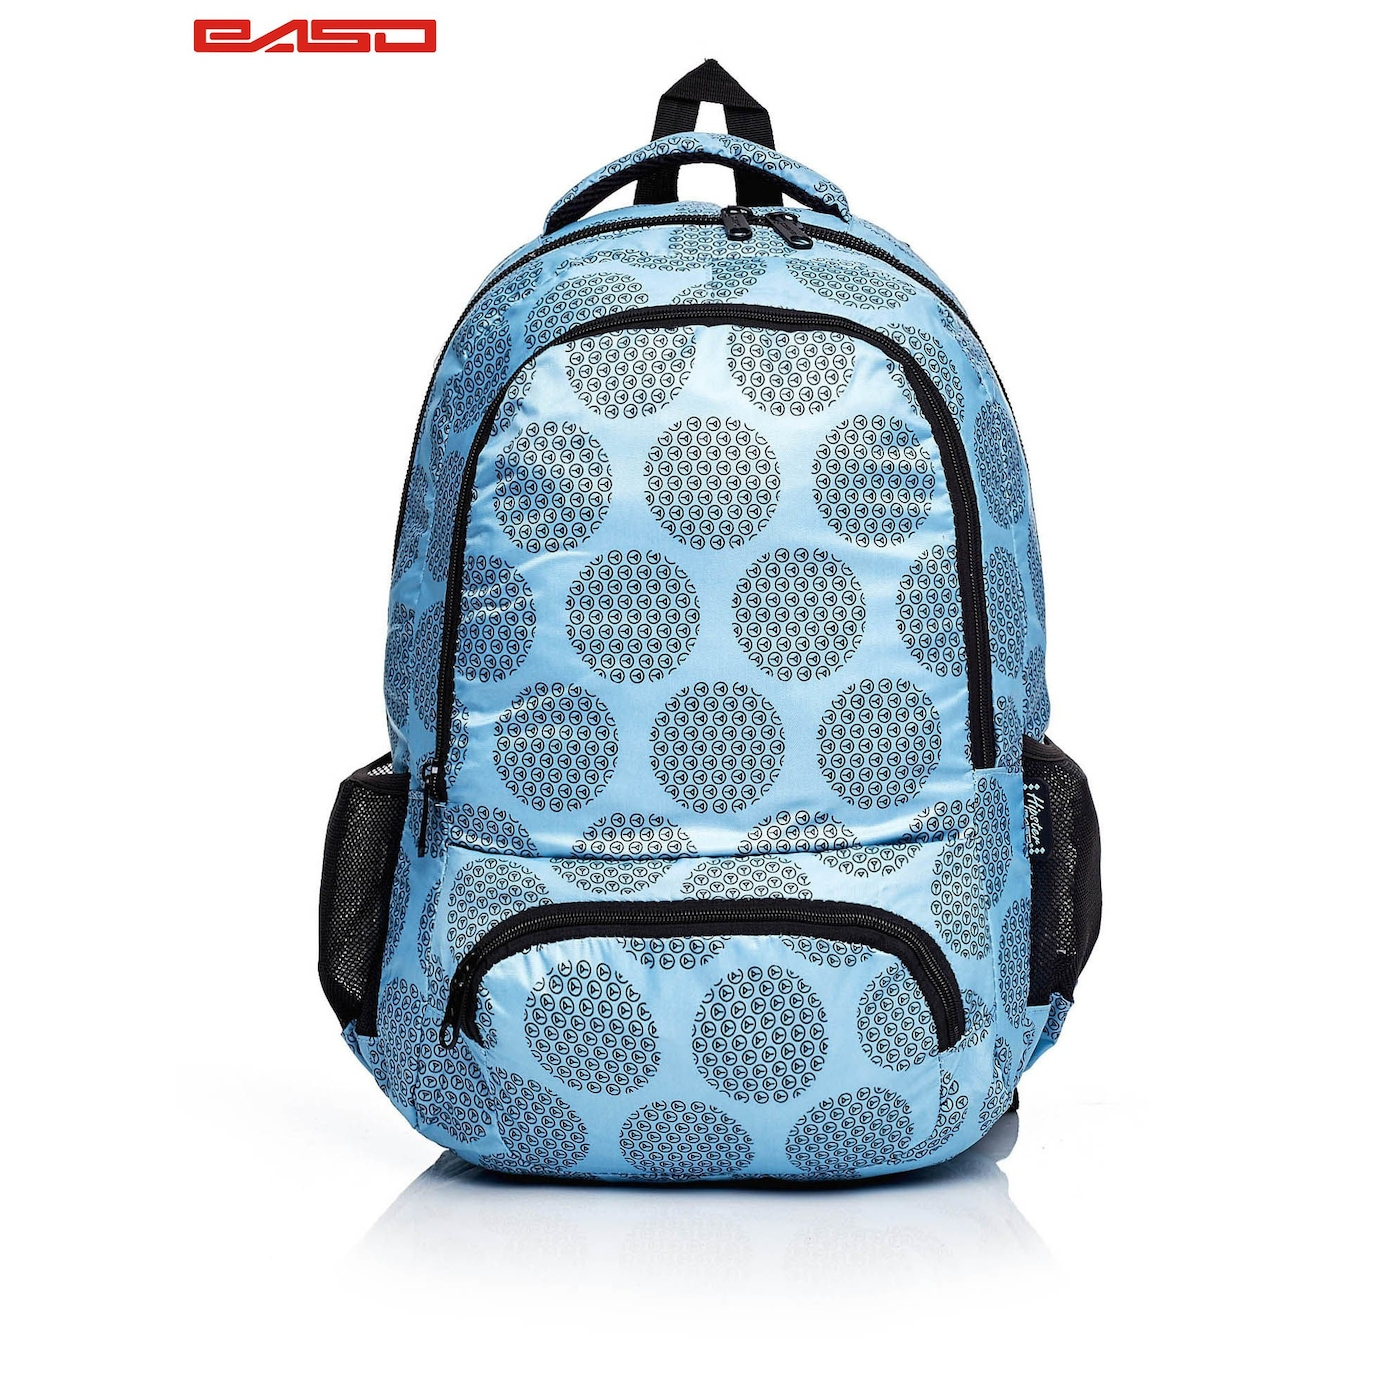 Blue school backpack with a graphic motif